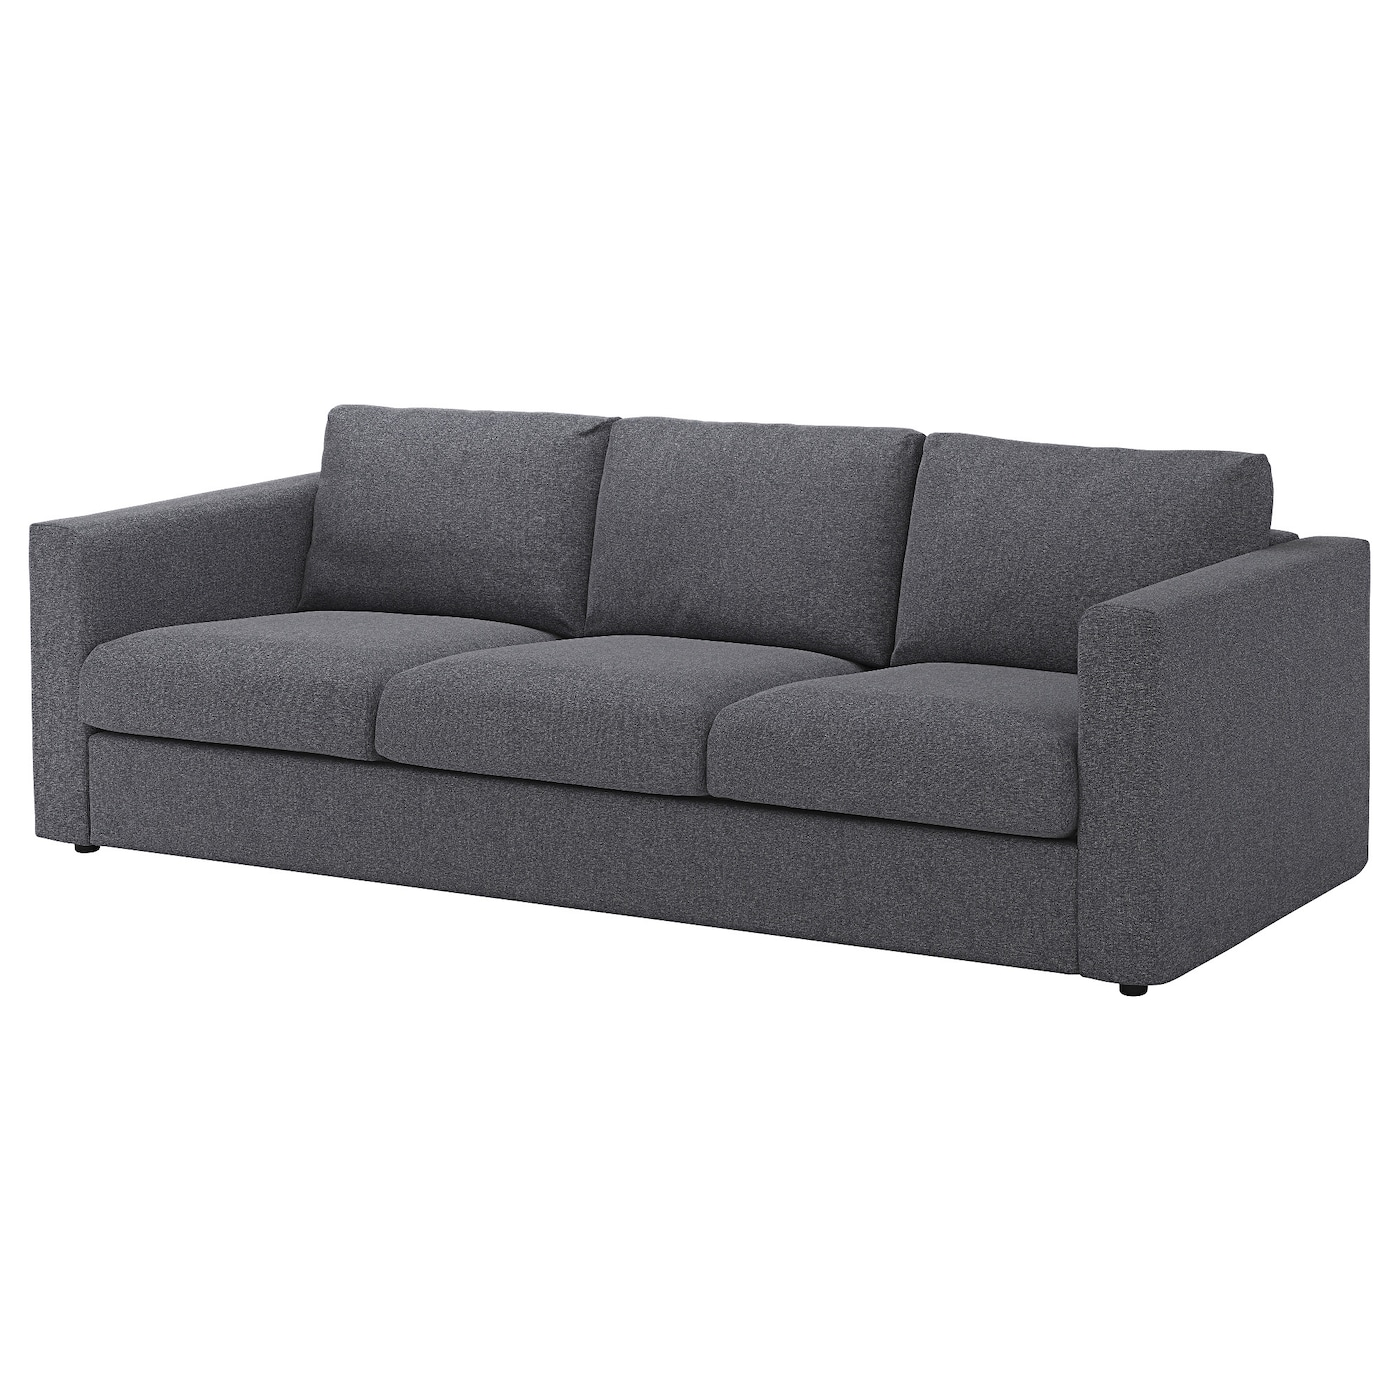 3 Seat Sofa Gunnared Medium Grey